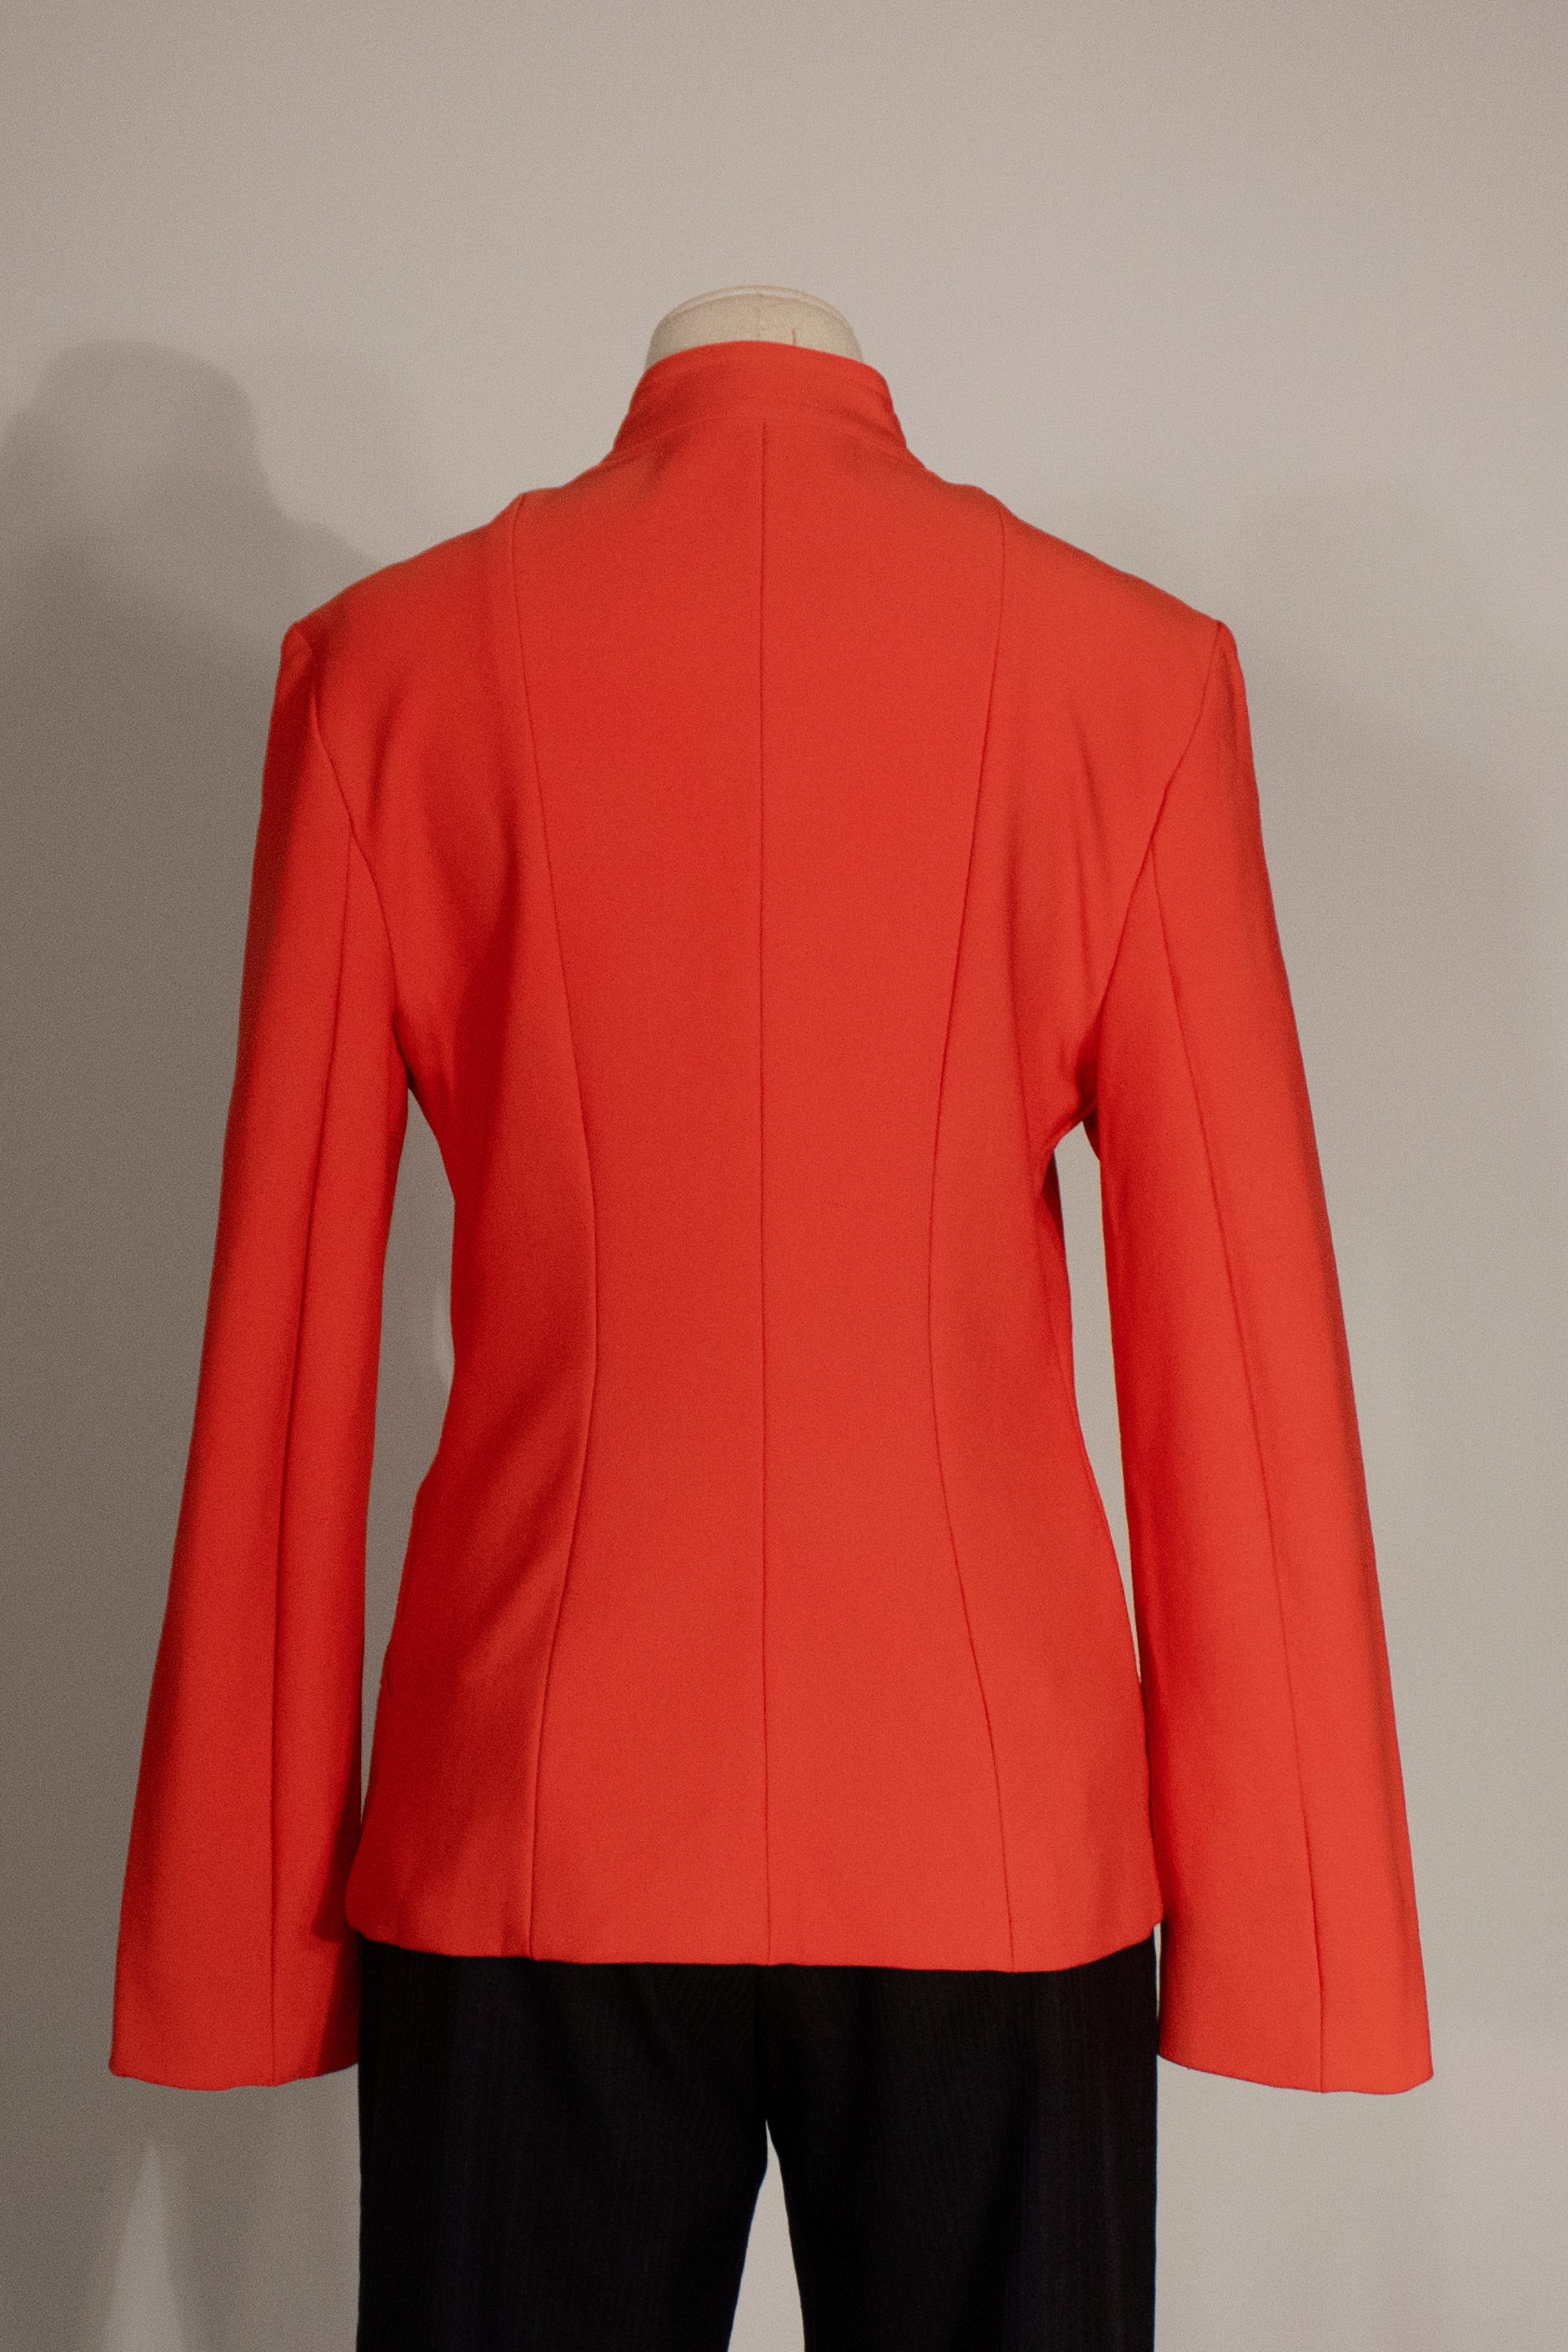 Miu Miu Orange Track Jacket